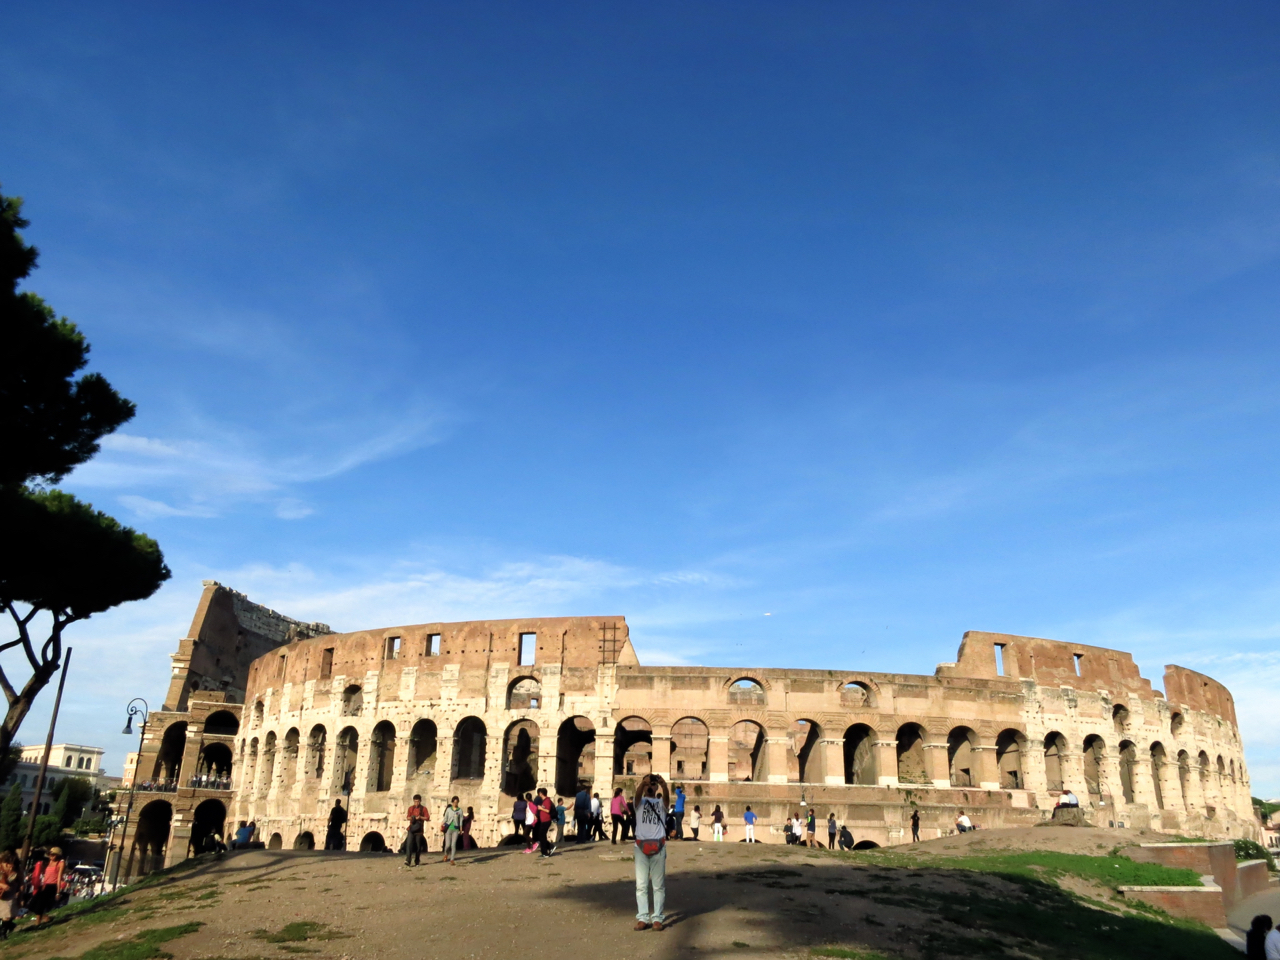 Colosseo in Rome, Italy